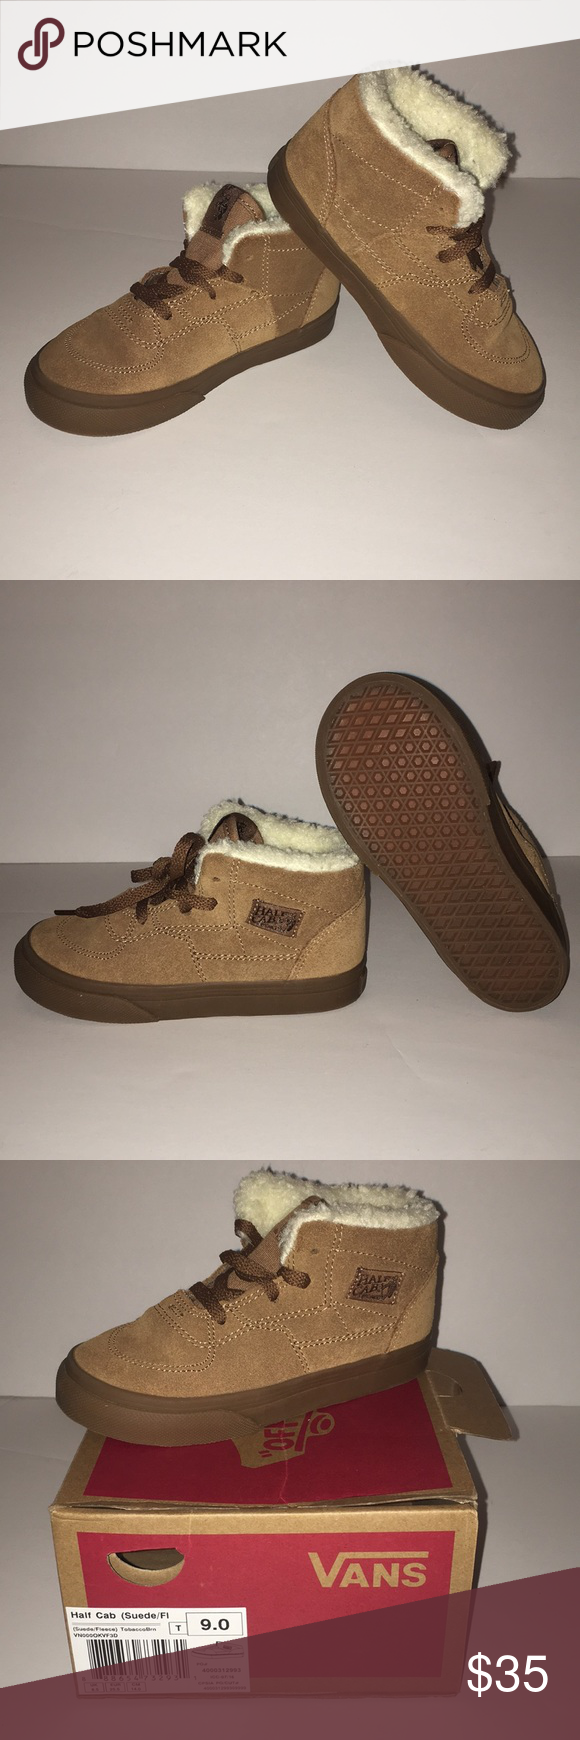 5422b4aac1 Vans Half Cab (Suede Fleece) Brand new in box! Half Cab (Suede Fleece) Tobacco  Brown Size 9.0 Toddler Vans Shoes Sneakers